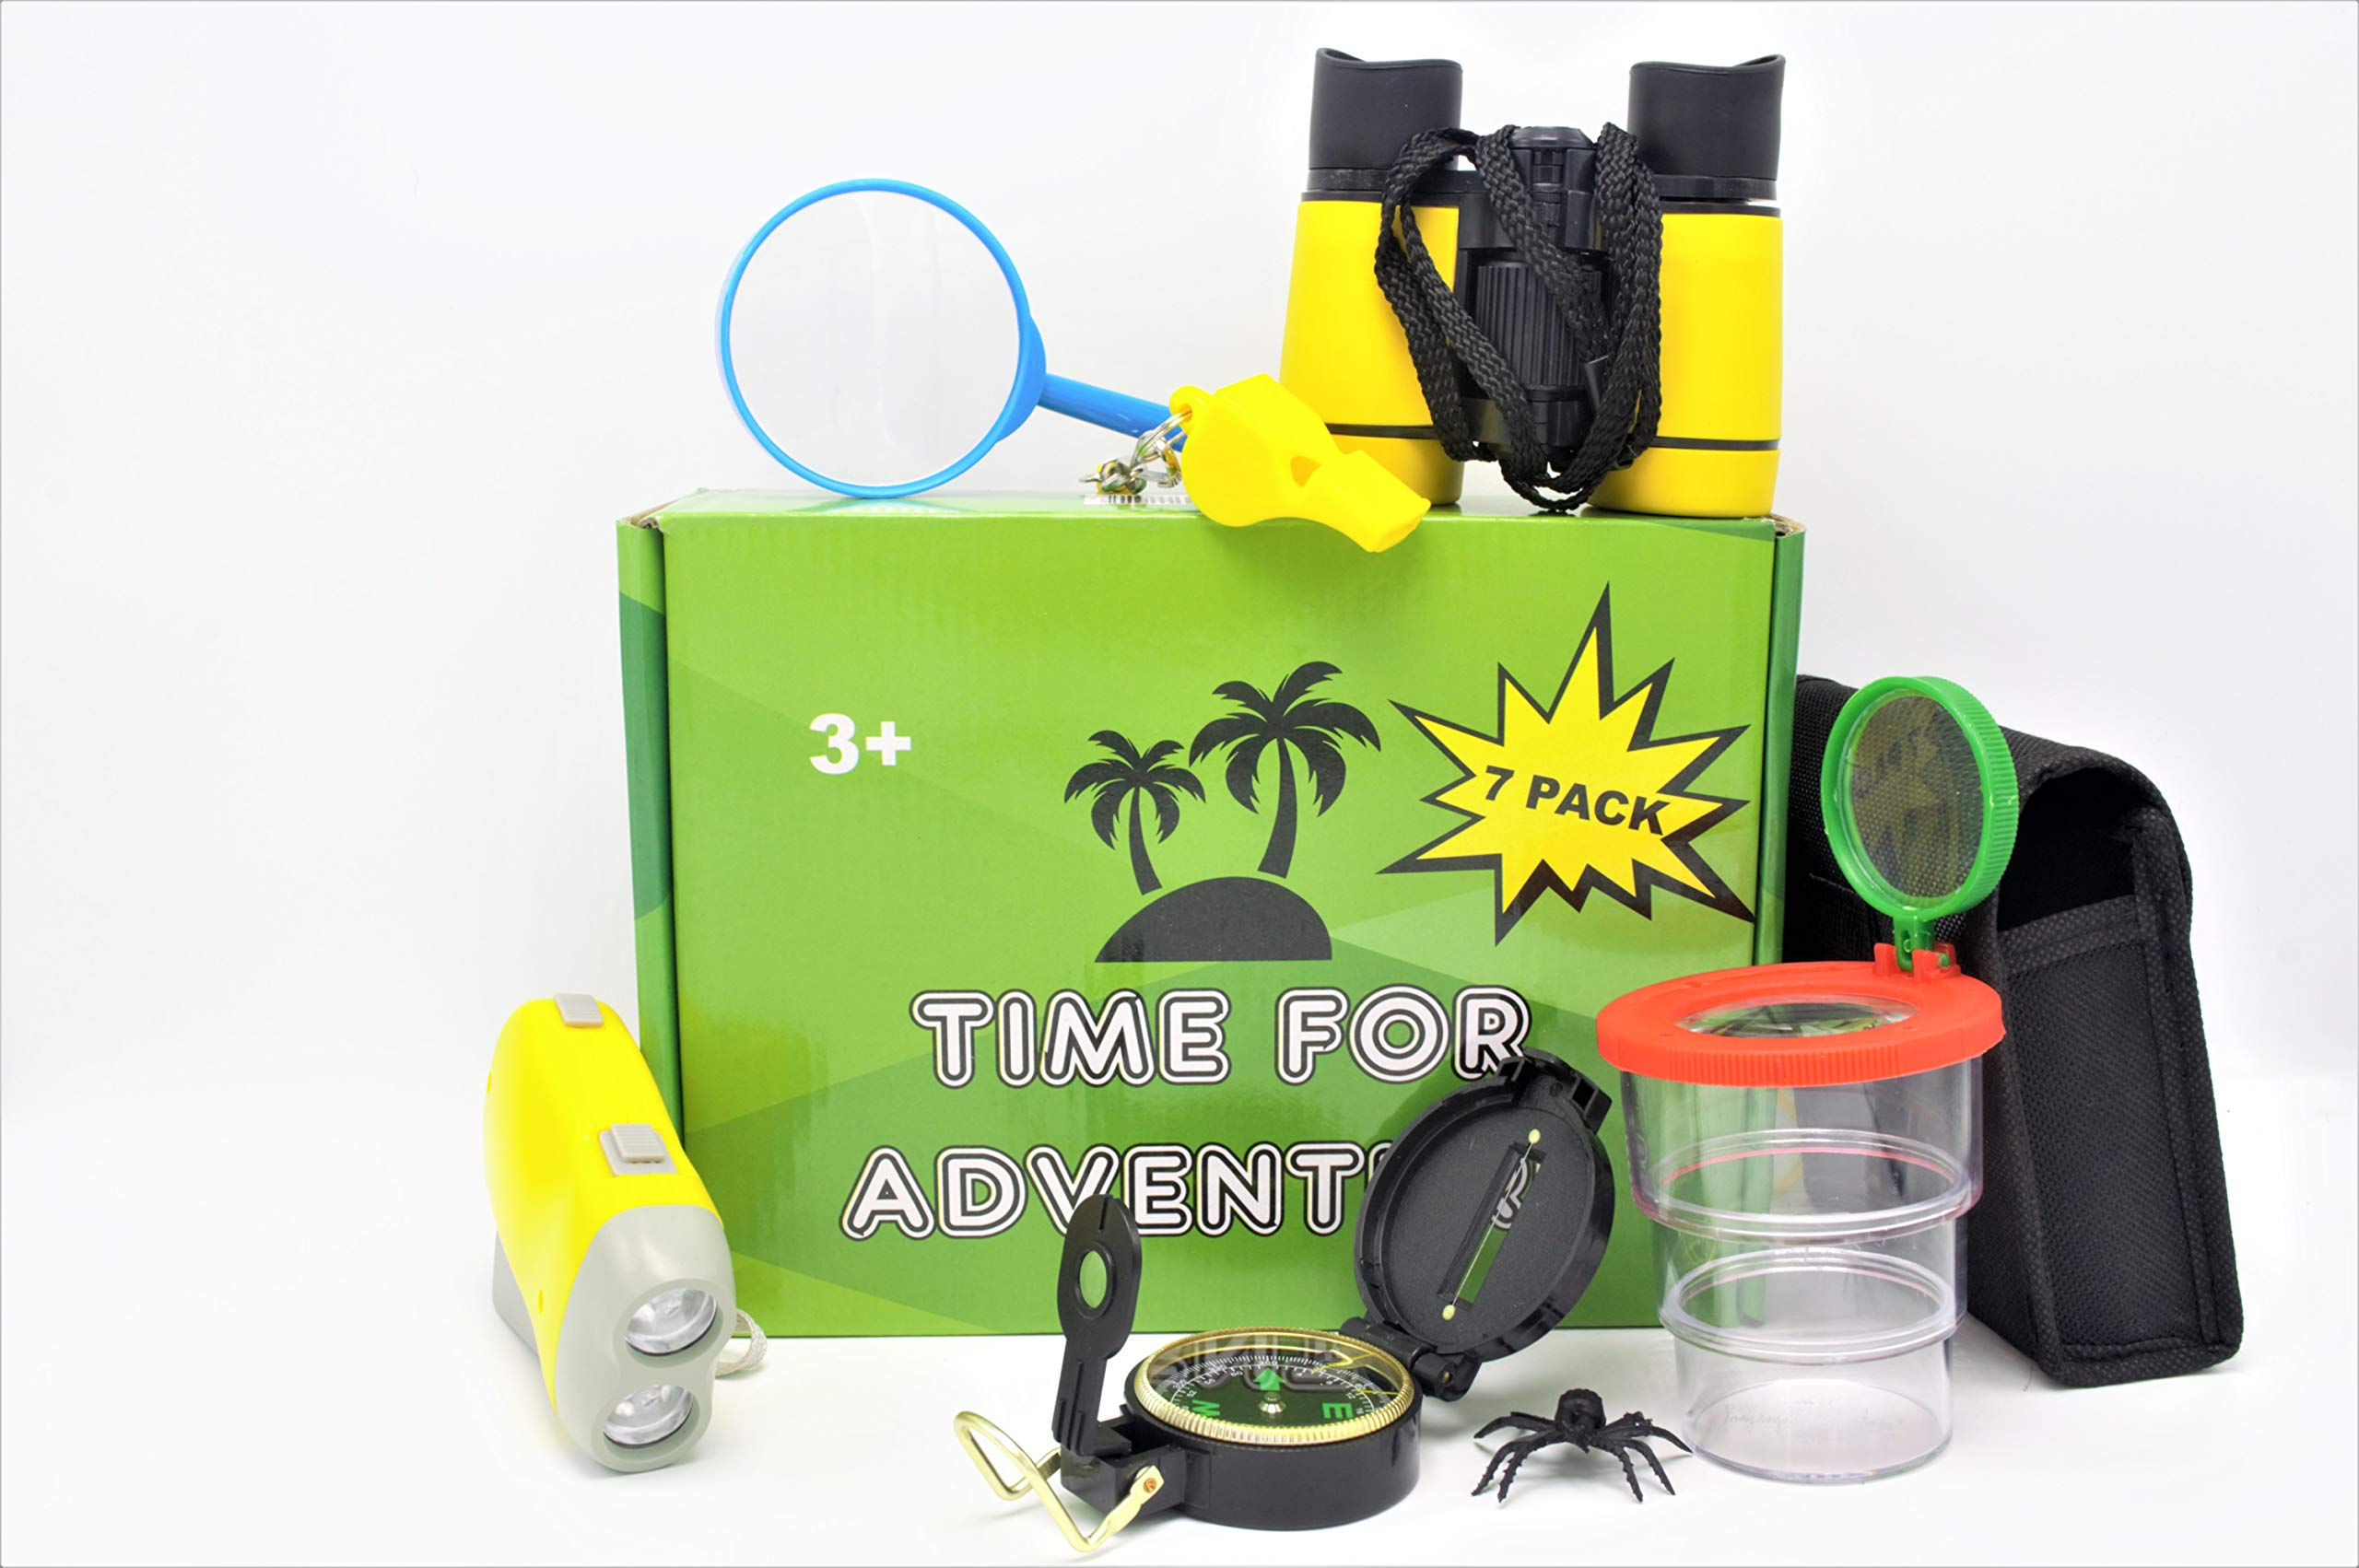 Time for Adventure Educational Outdoor Explorer Kit for Children - Binoculars, Flashlight, Compass, Magnifying Glass, Bug Collector, Whistle & Backpack - Great Gift Set for Birthday, Holiday, Camping